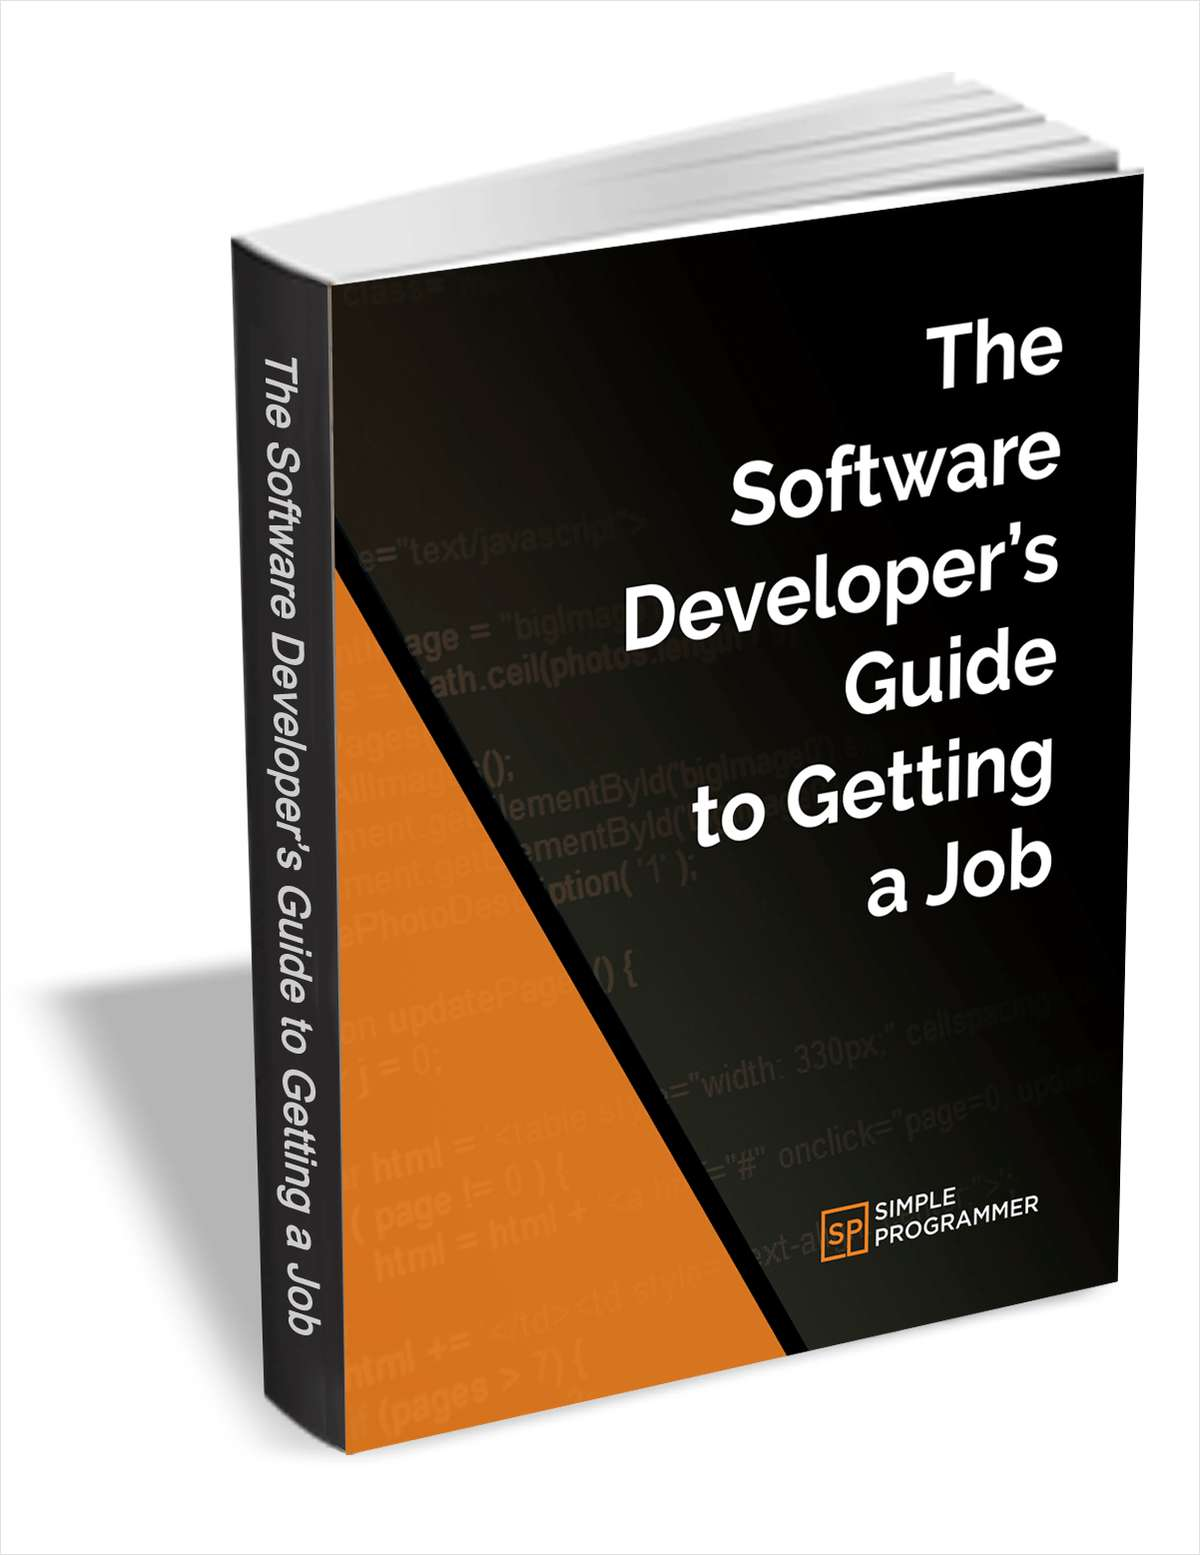 The Software Developer's Guide to Getting a Job